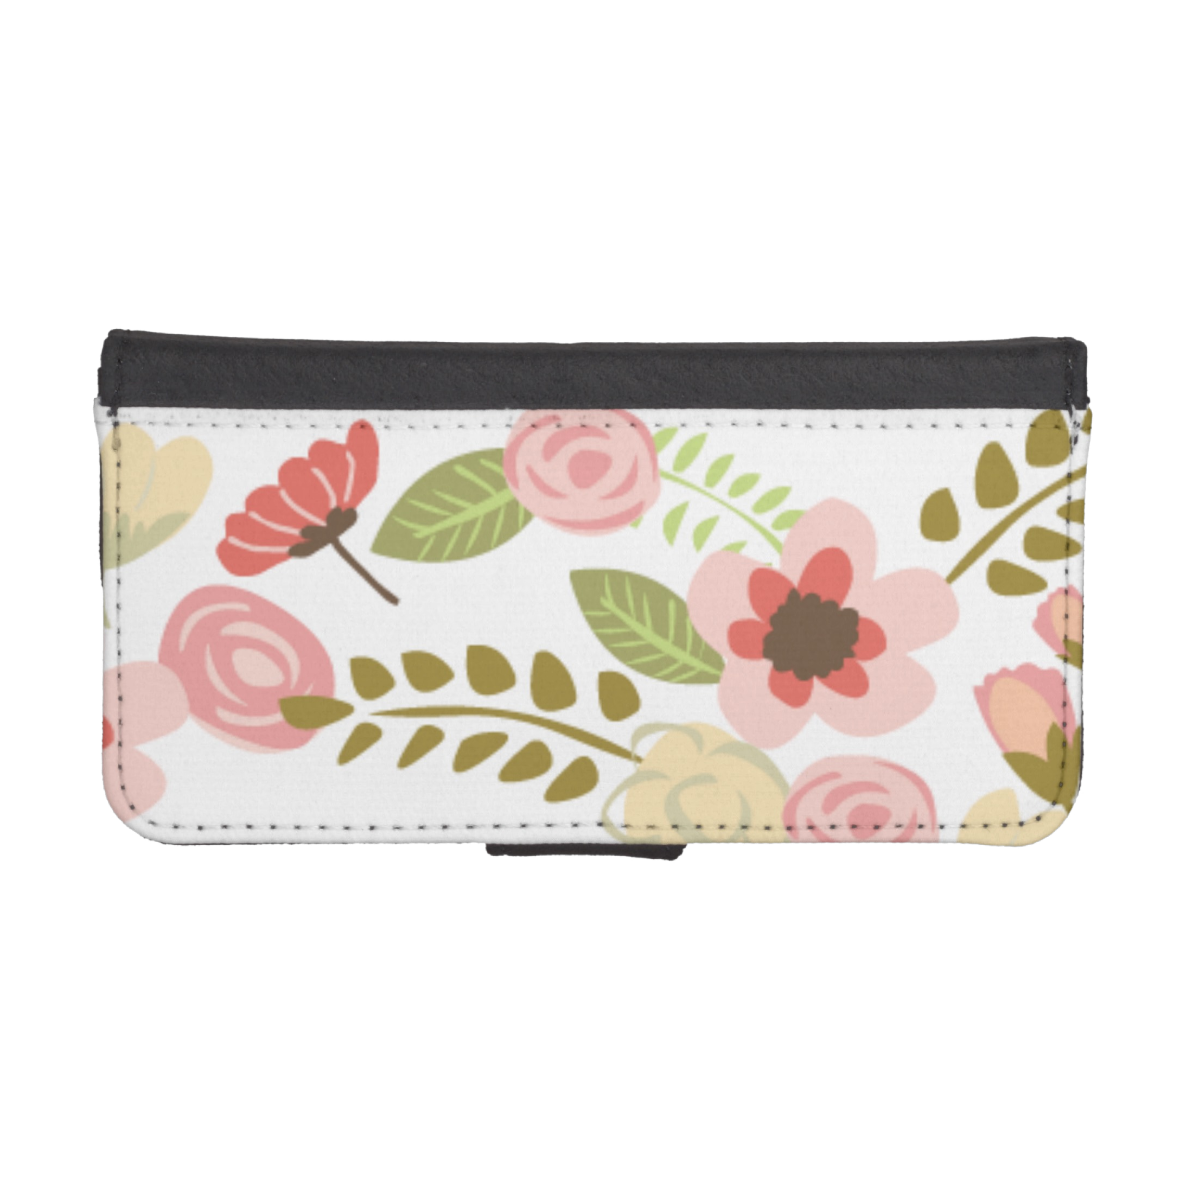 Botanical Wallet Smartphone Case